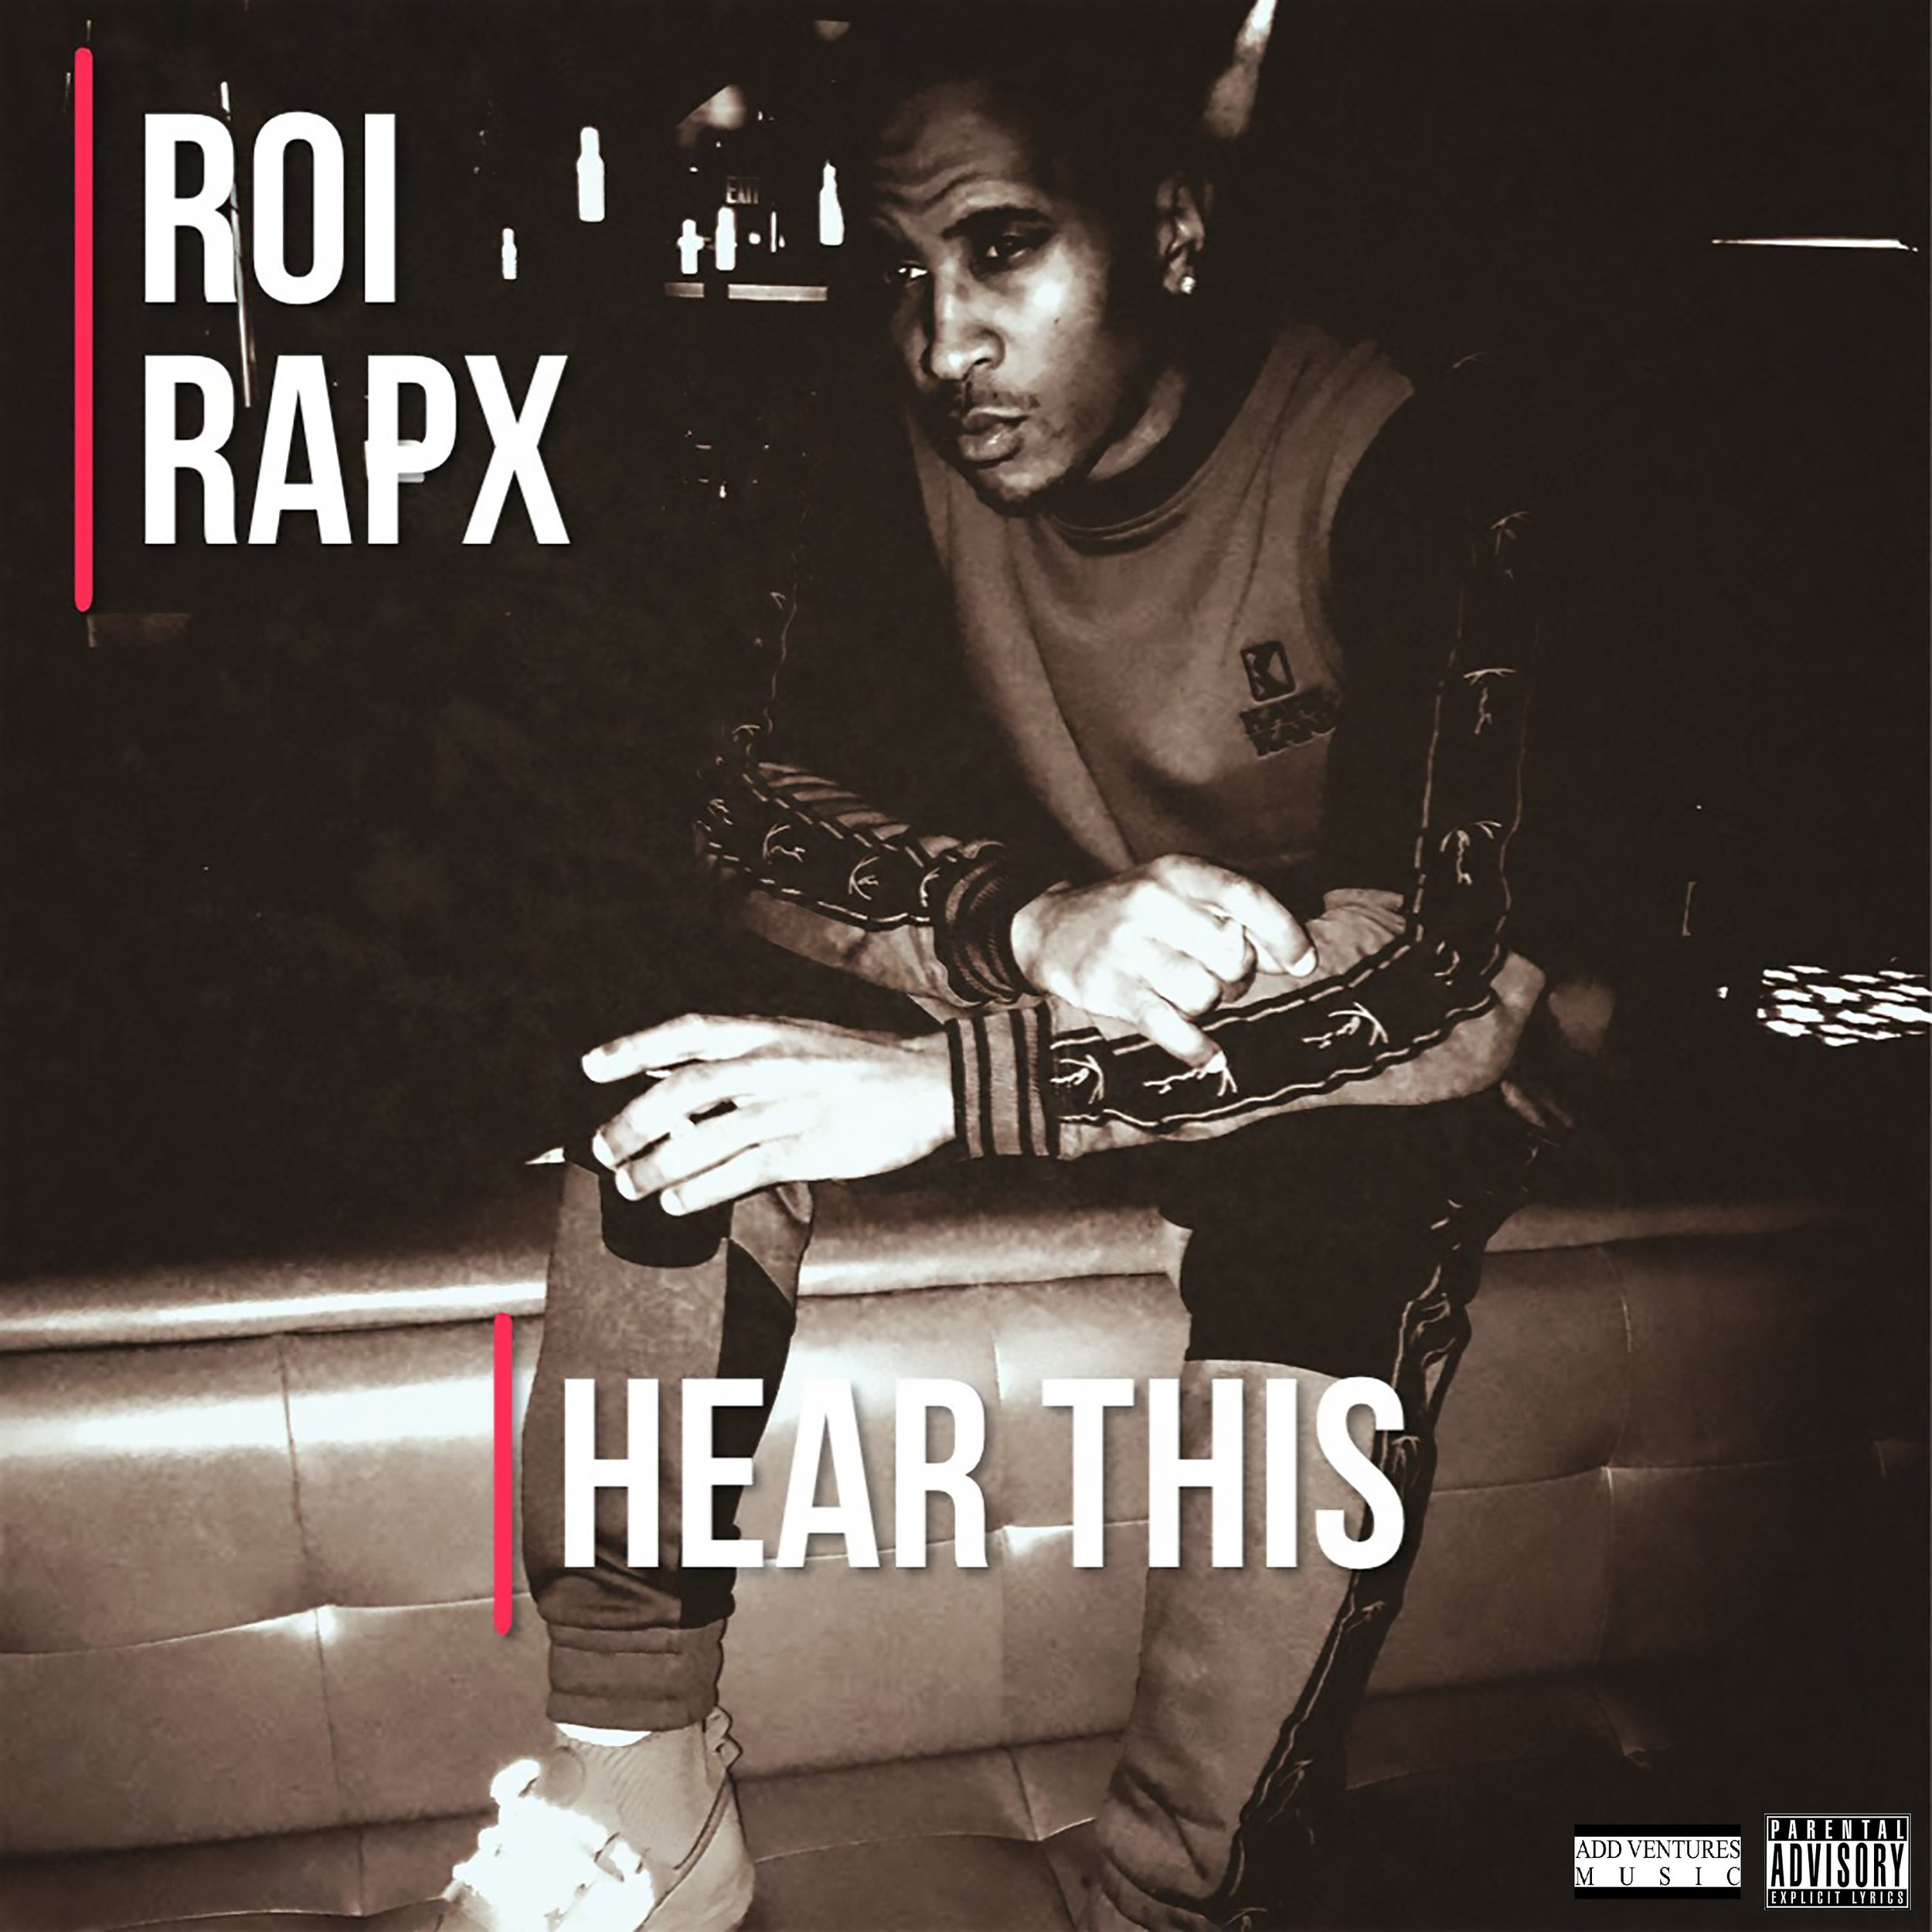 Roi Rapx - Hear This - Explicit Single Cover.jpg